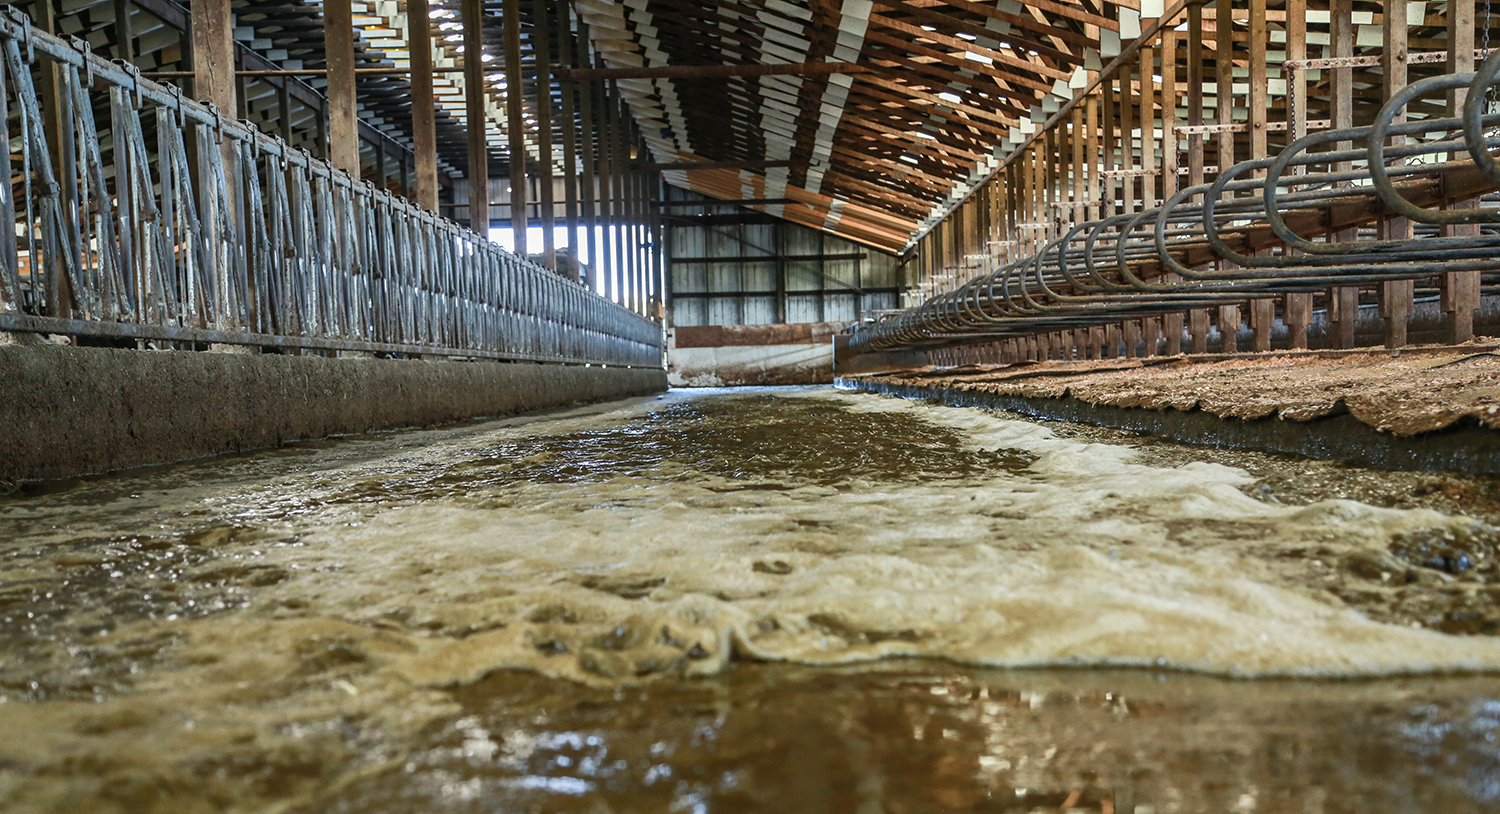 Water flushing out a dairy barn